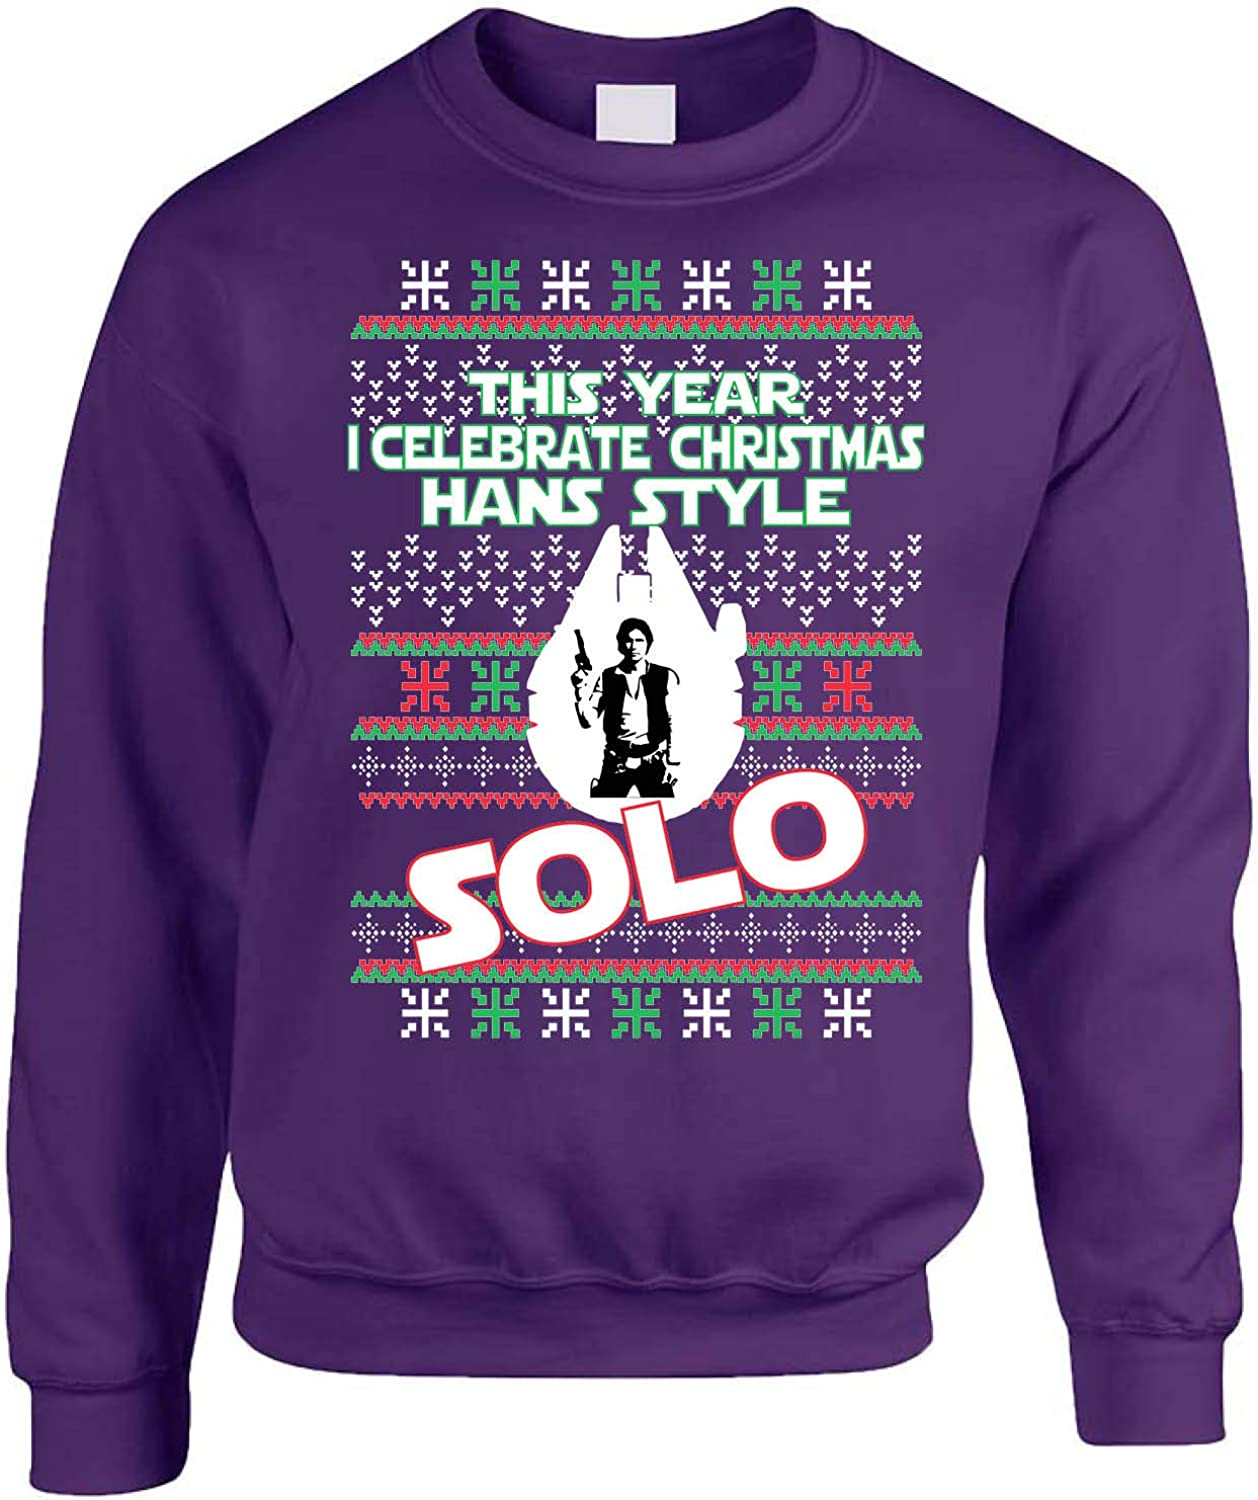 Allntrends Adult Sweatshirt This Year I Celebrate Christmas Solo Trendy Xmas Top